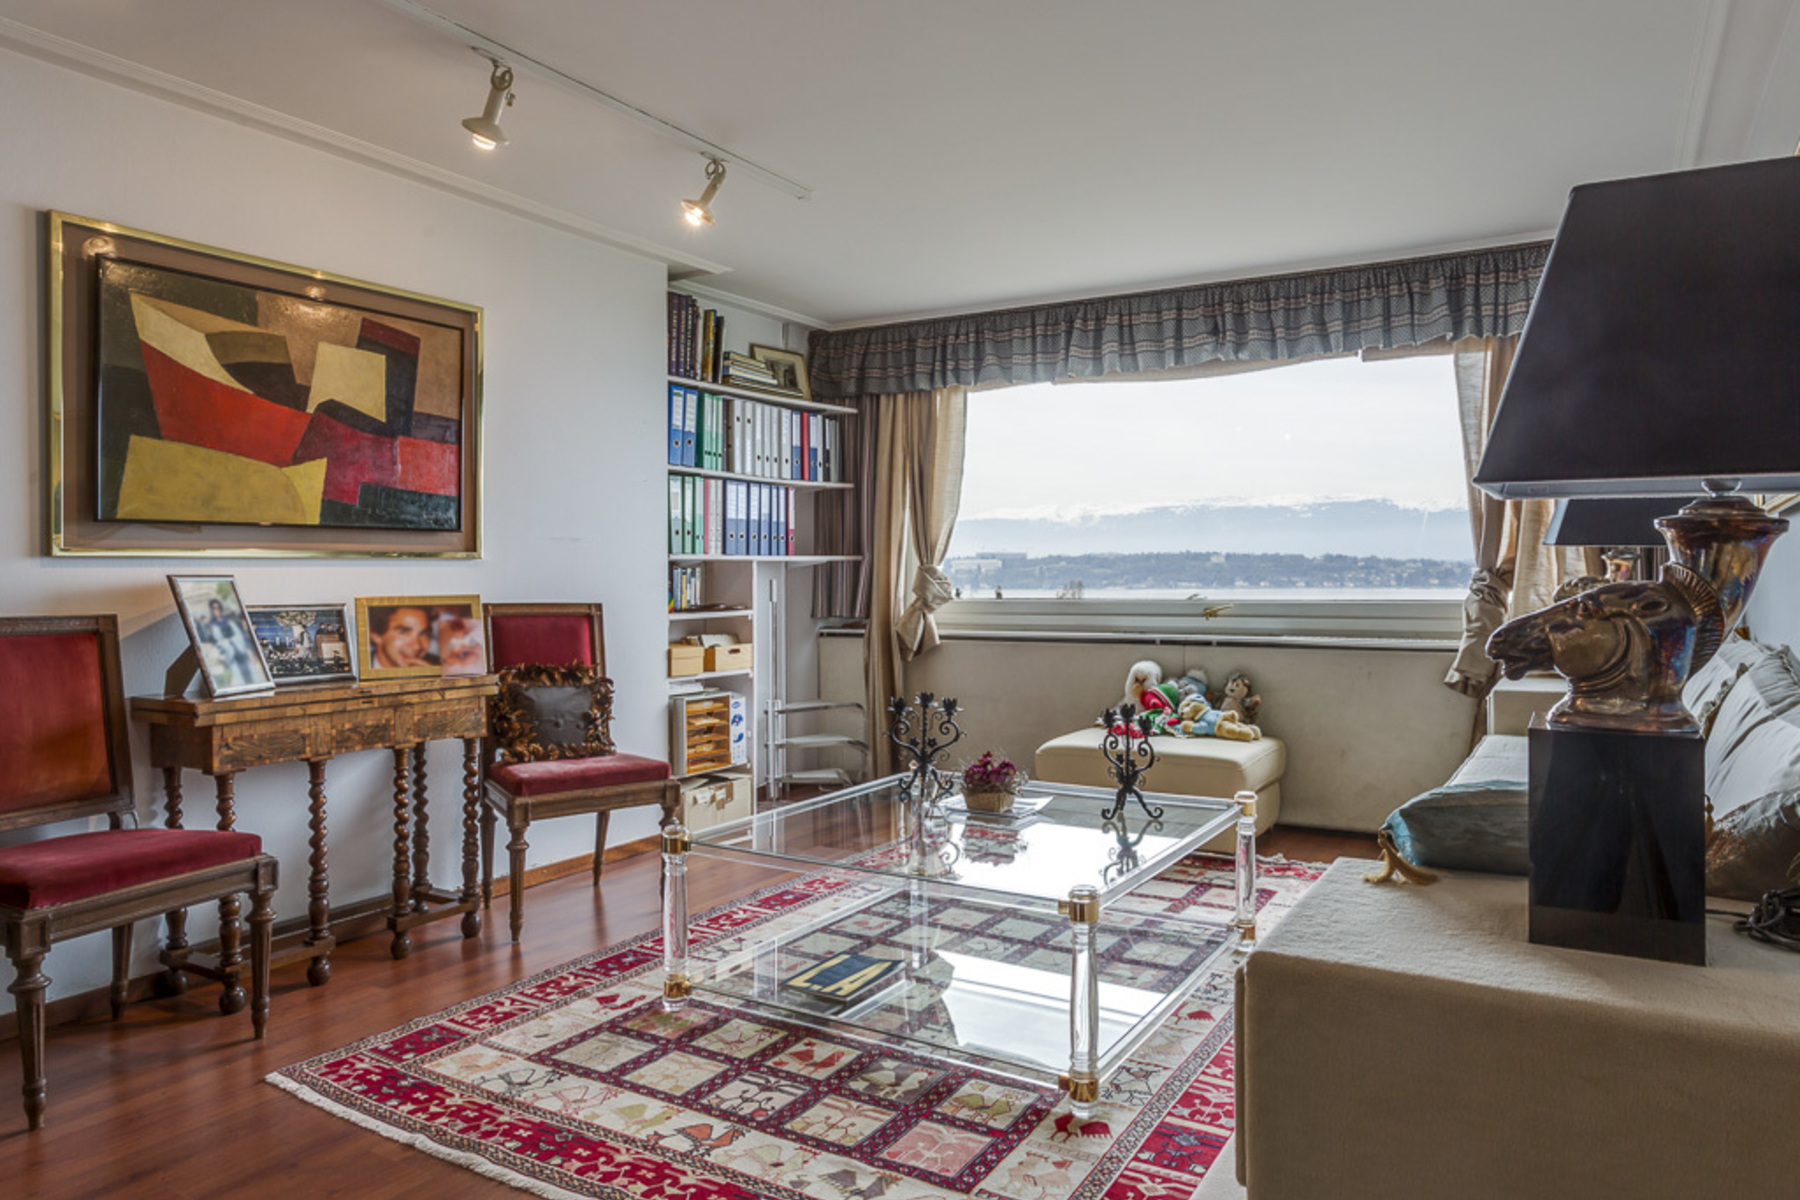 Single Family Home for Sale at Unimpeded Lake View Cologny Cologny, Geneva 1223 Switzerland